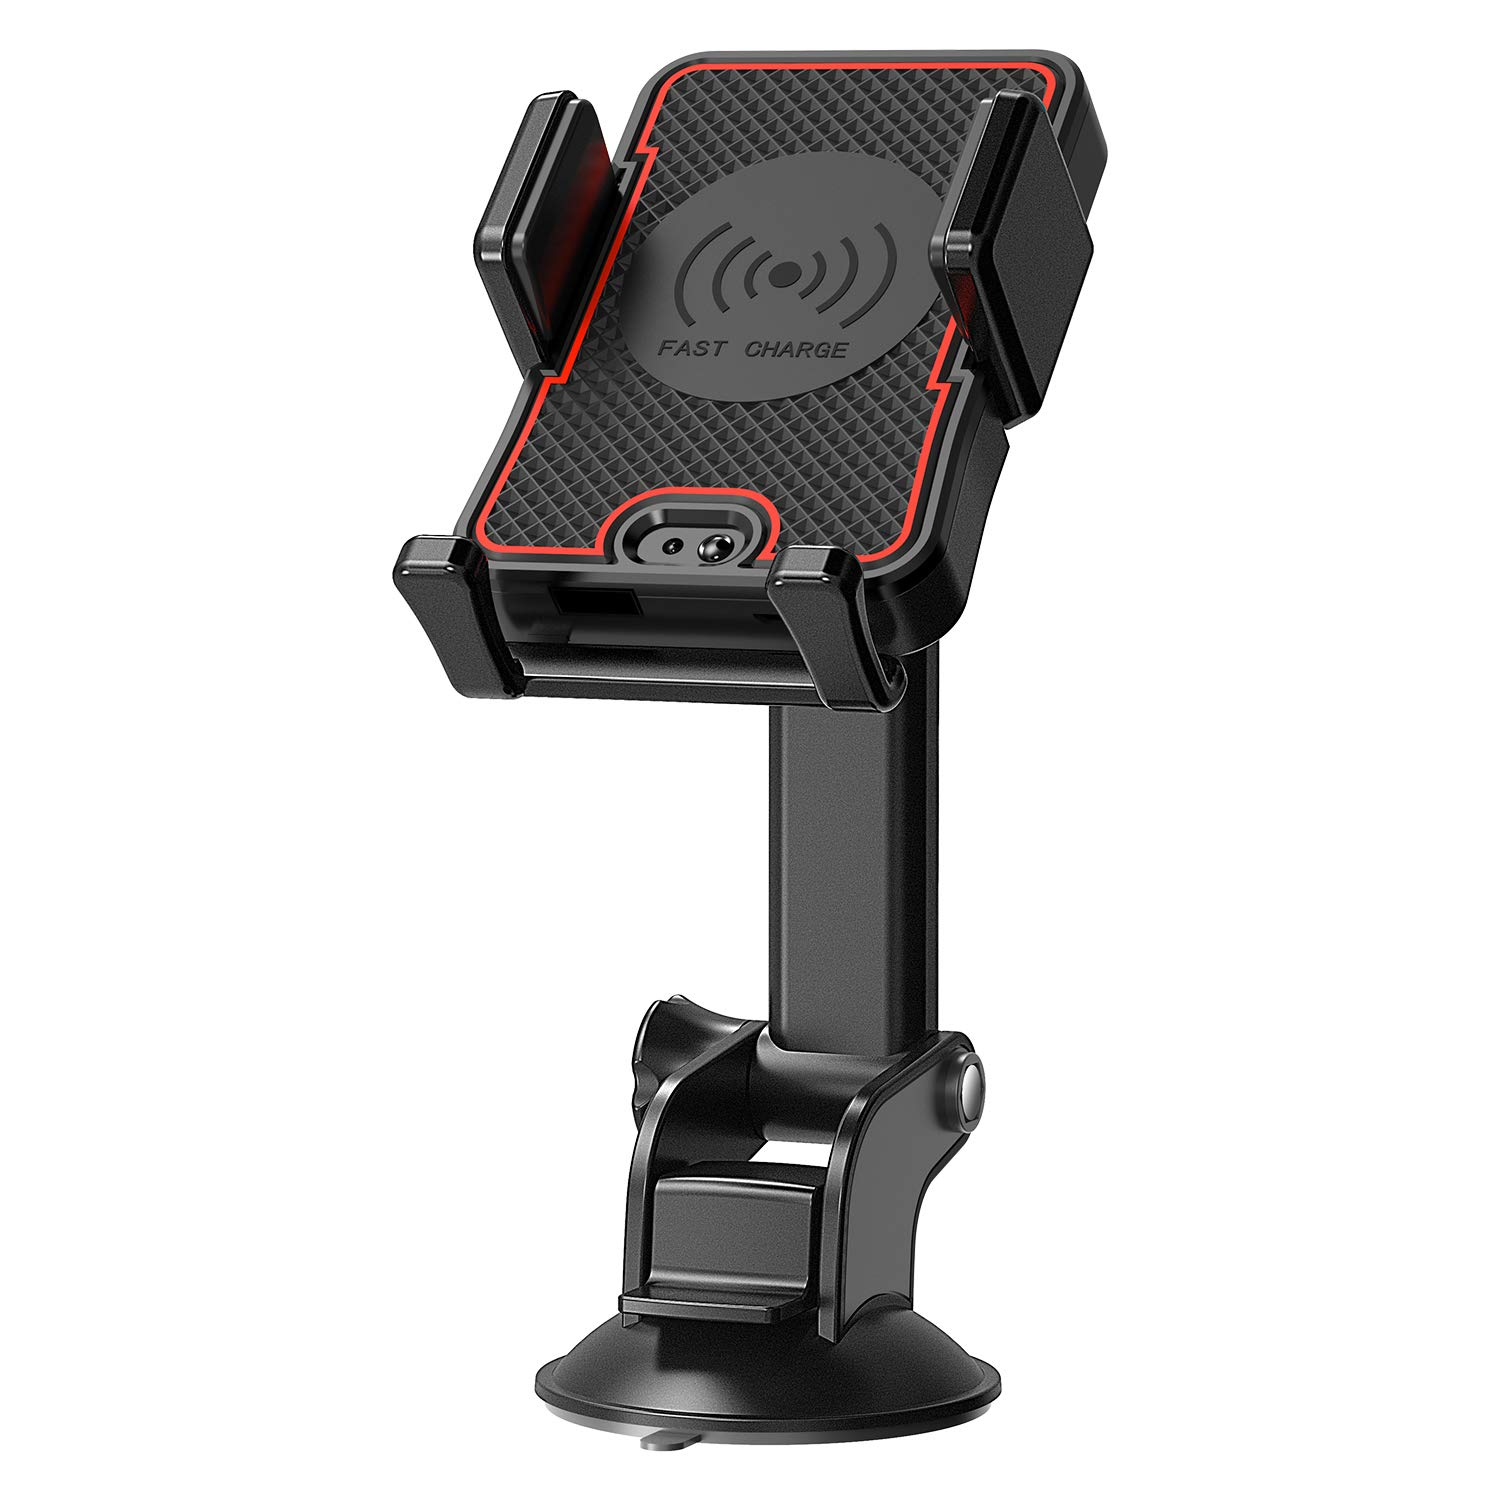 Wireless Charger Car Mount CellPhone Holder with Automatic Infrared Sensor 2 in 1 Fast Charging for Huawei Samsung Galaxy S10 S9 Plus S8 S7 Edge Note 8 5 iPhone Xs MAX Xr X 8 All QI Devices Red Black